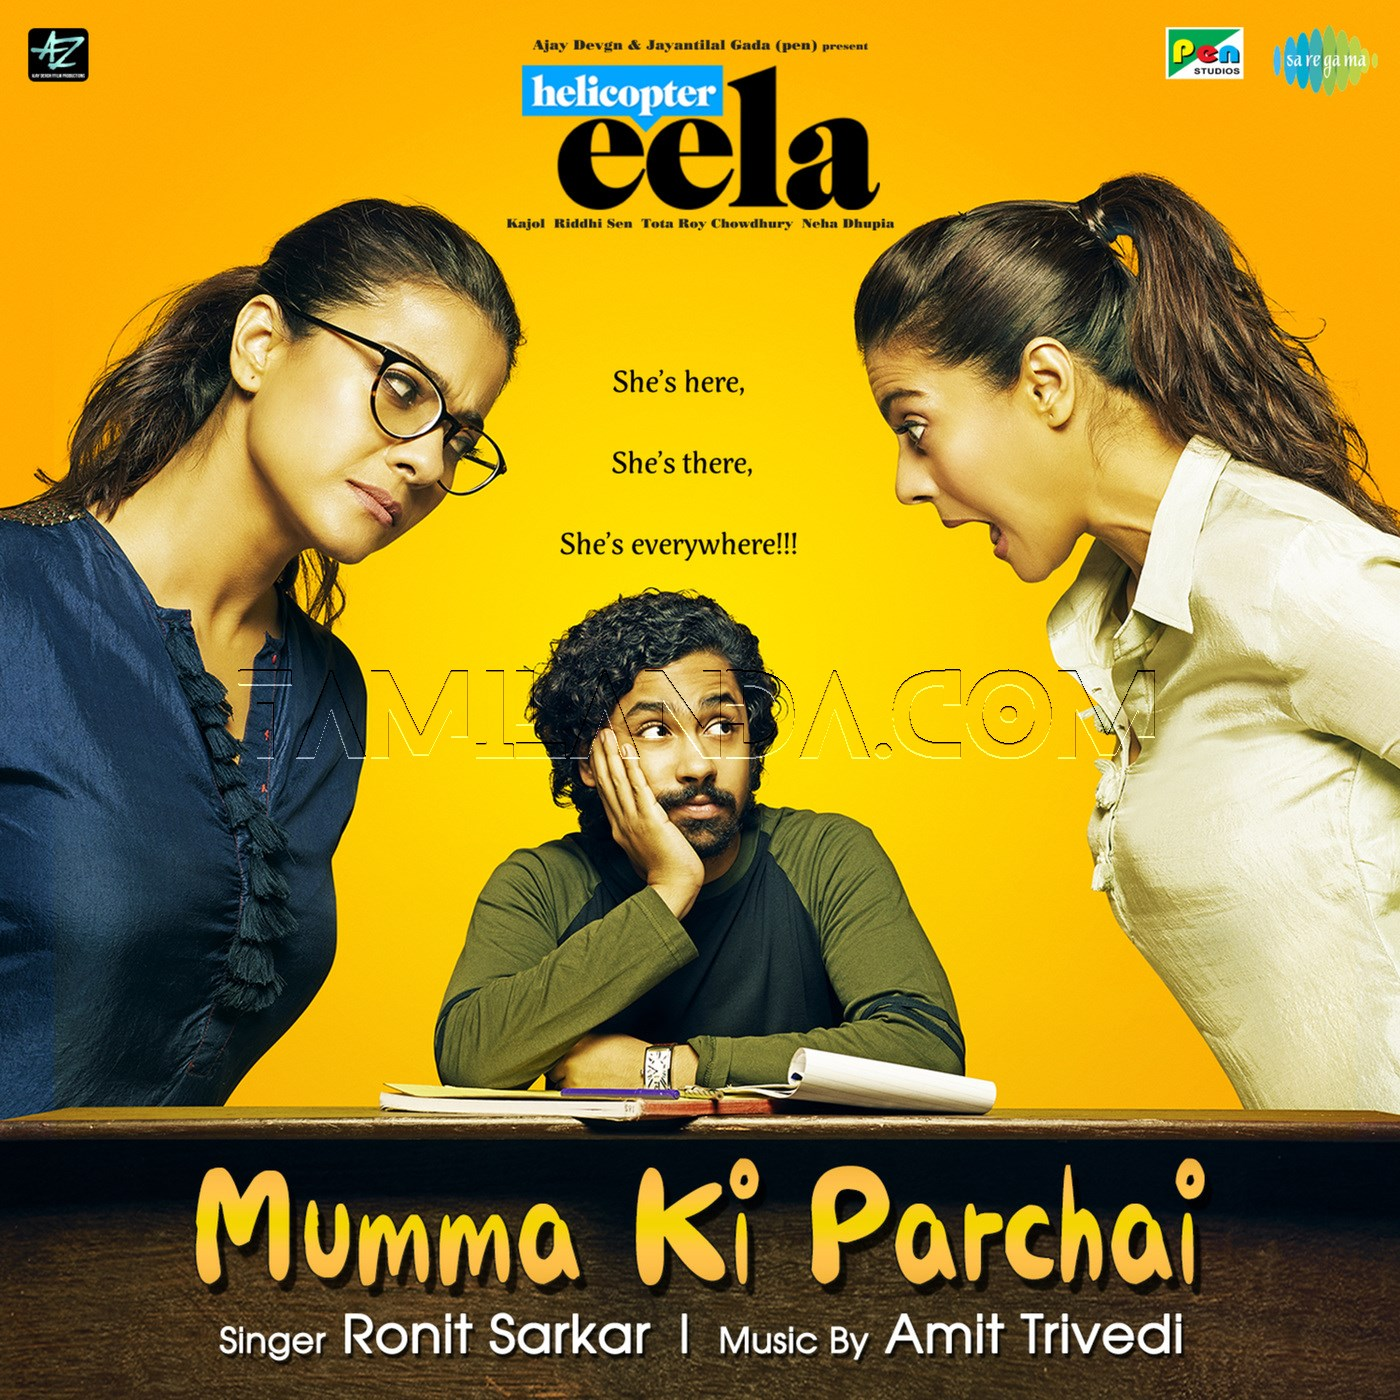 Mumma Ki Parchai (From Helicopter Eela) – Single FLAC Song